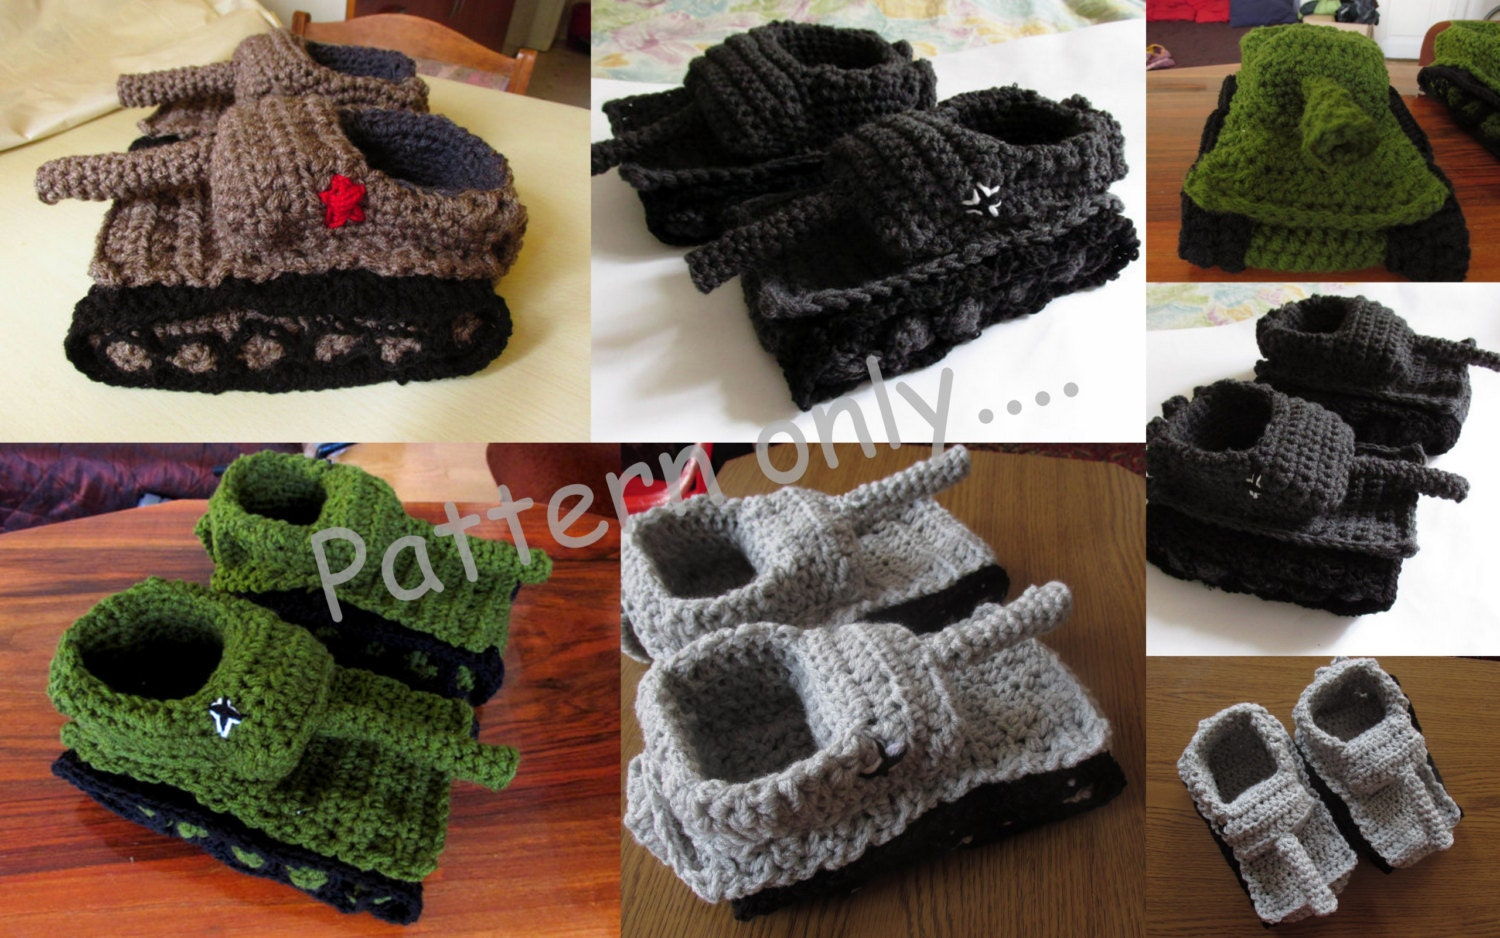 Knitting Pattern For Army Tank Slippers : Tiger 1 Slipper Crochet Pattern Diy Crochet Tank Slippers